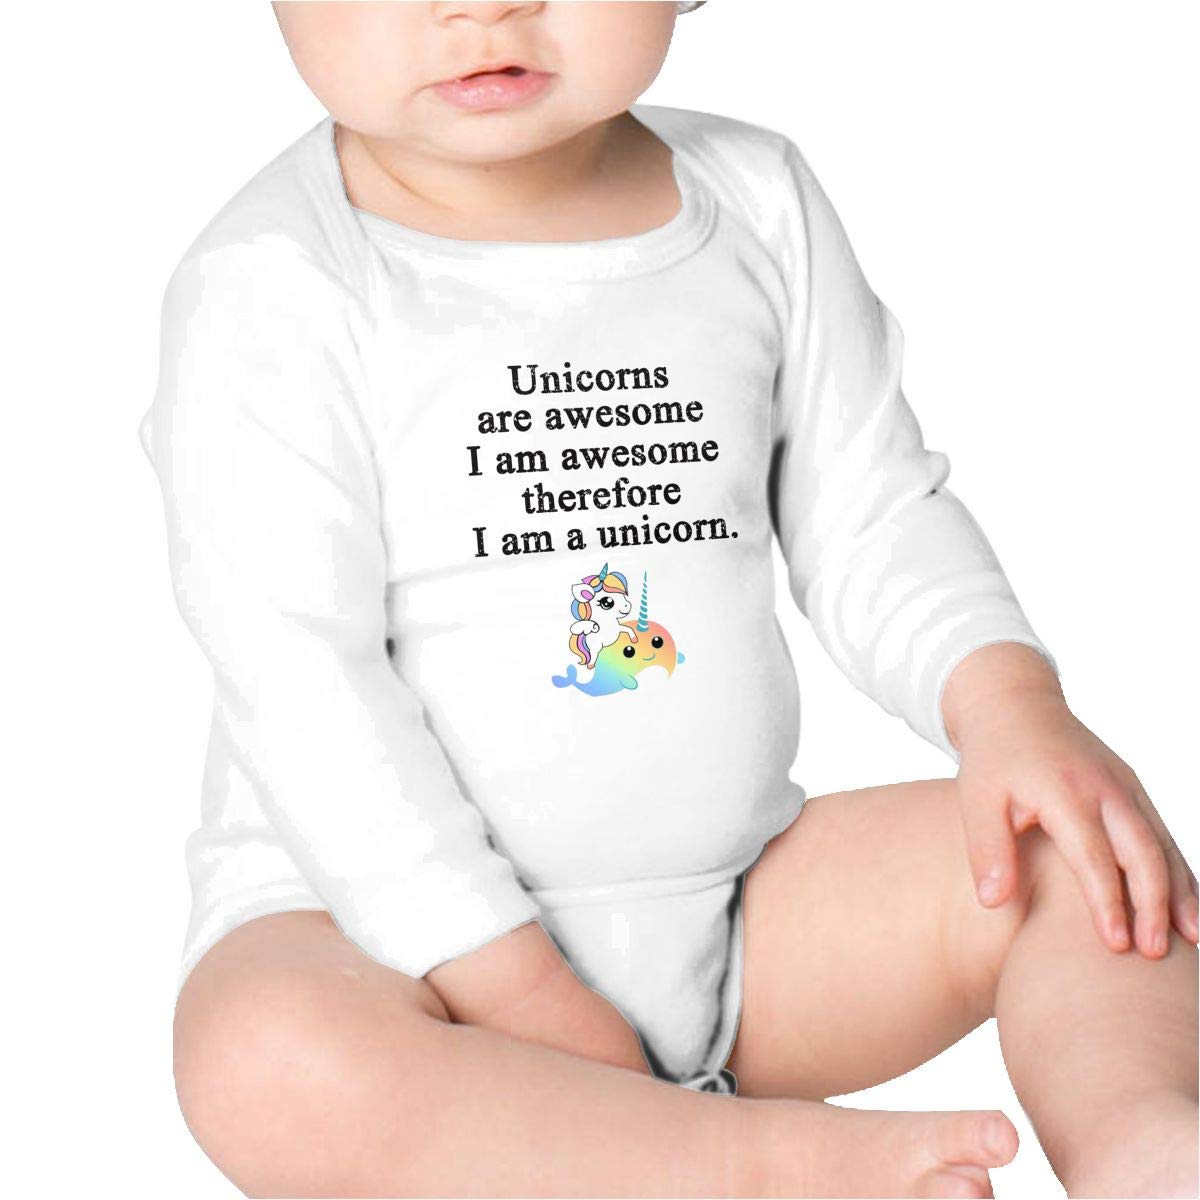 Unicorns are Awesome Therefore Im A Unicorn Kids Cotton,Long Sleeve Infantile Suit